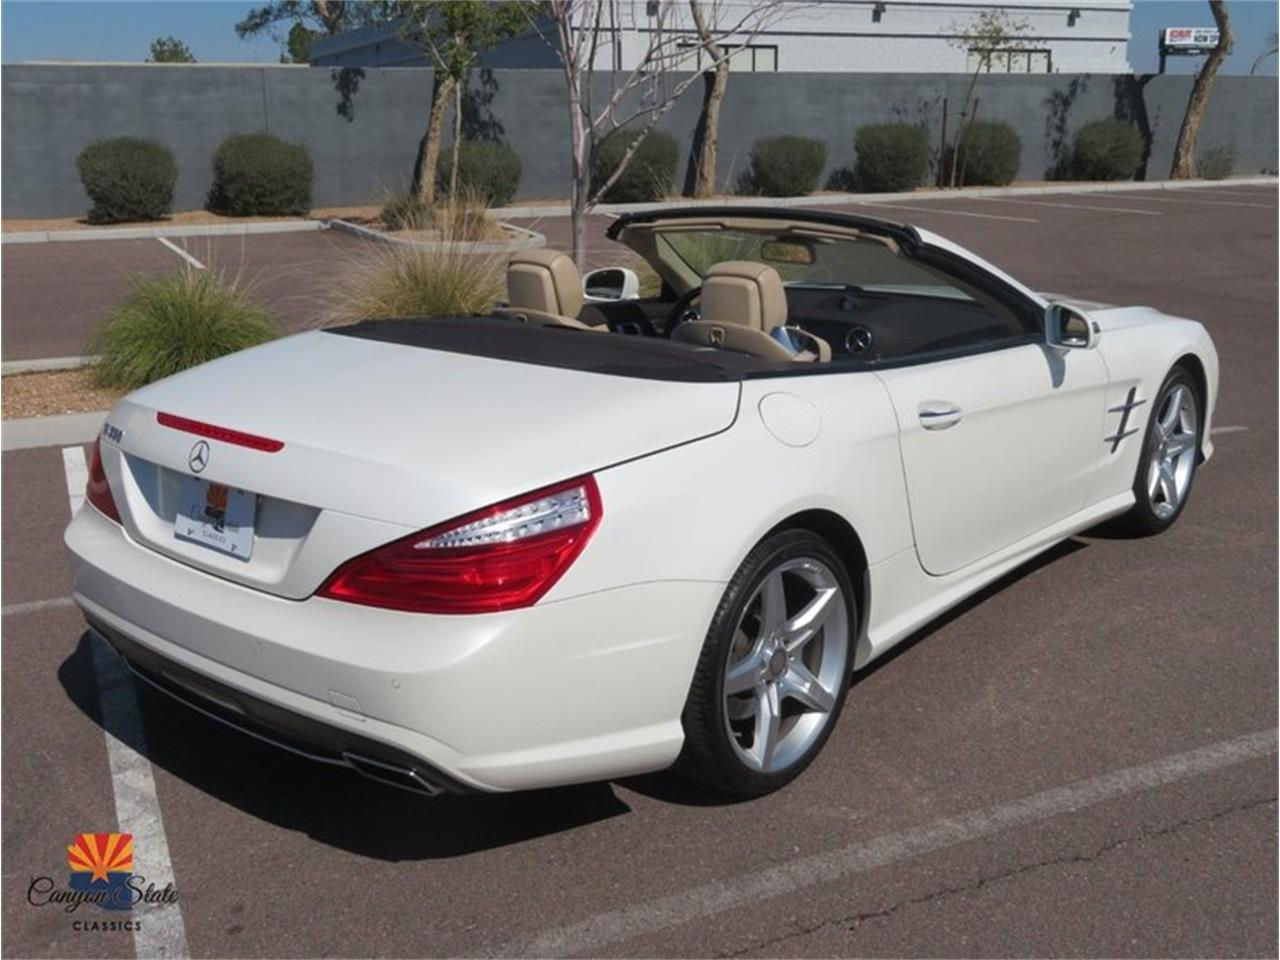 2013 Mercedes-Benz SL-Class for sale in Tempe, AZ – photo 43